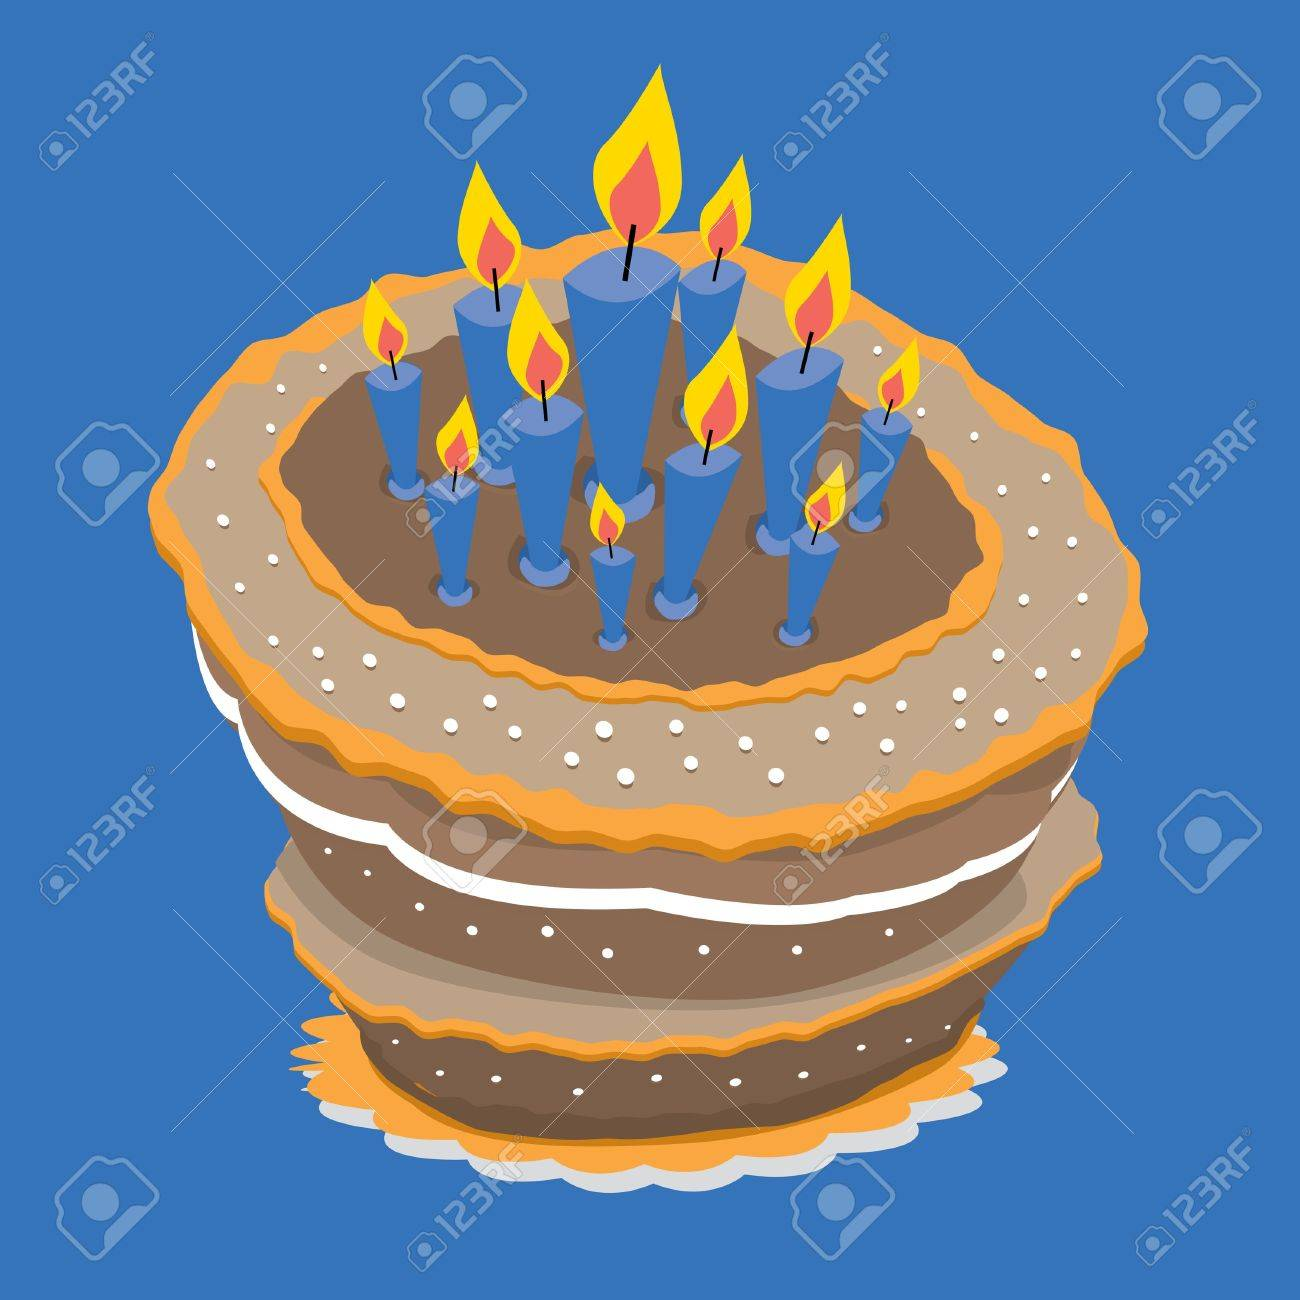 A Huge Birthday Cake With Many Candles Royalty Free Cliparts